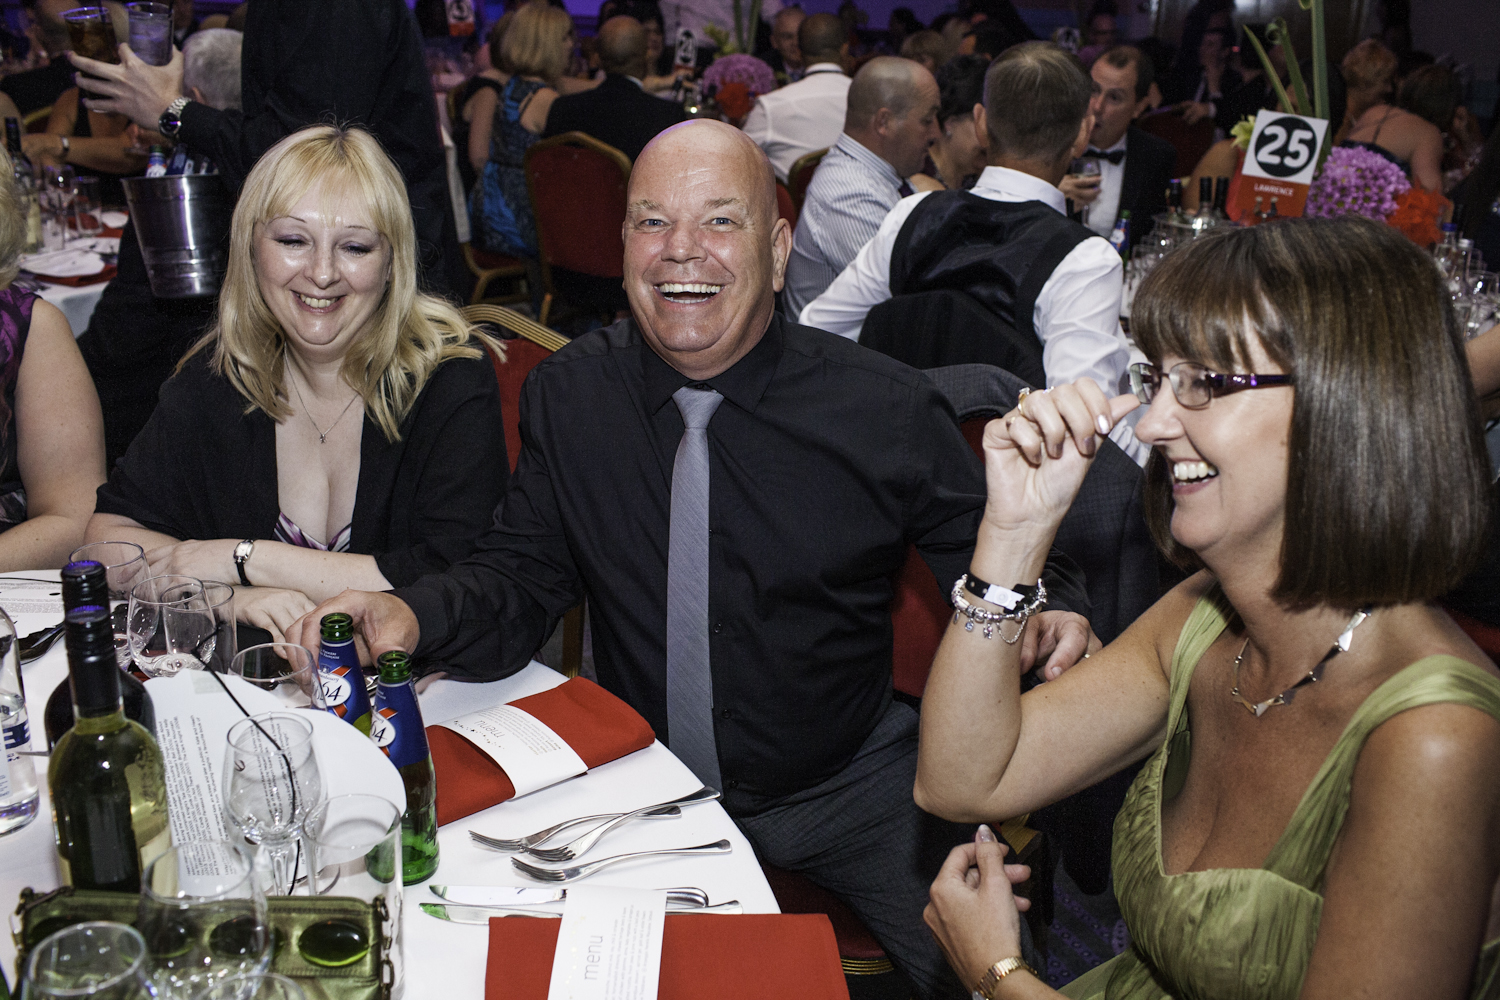 Employees of the Post Office enjoying themselves at the Troxy.